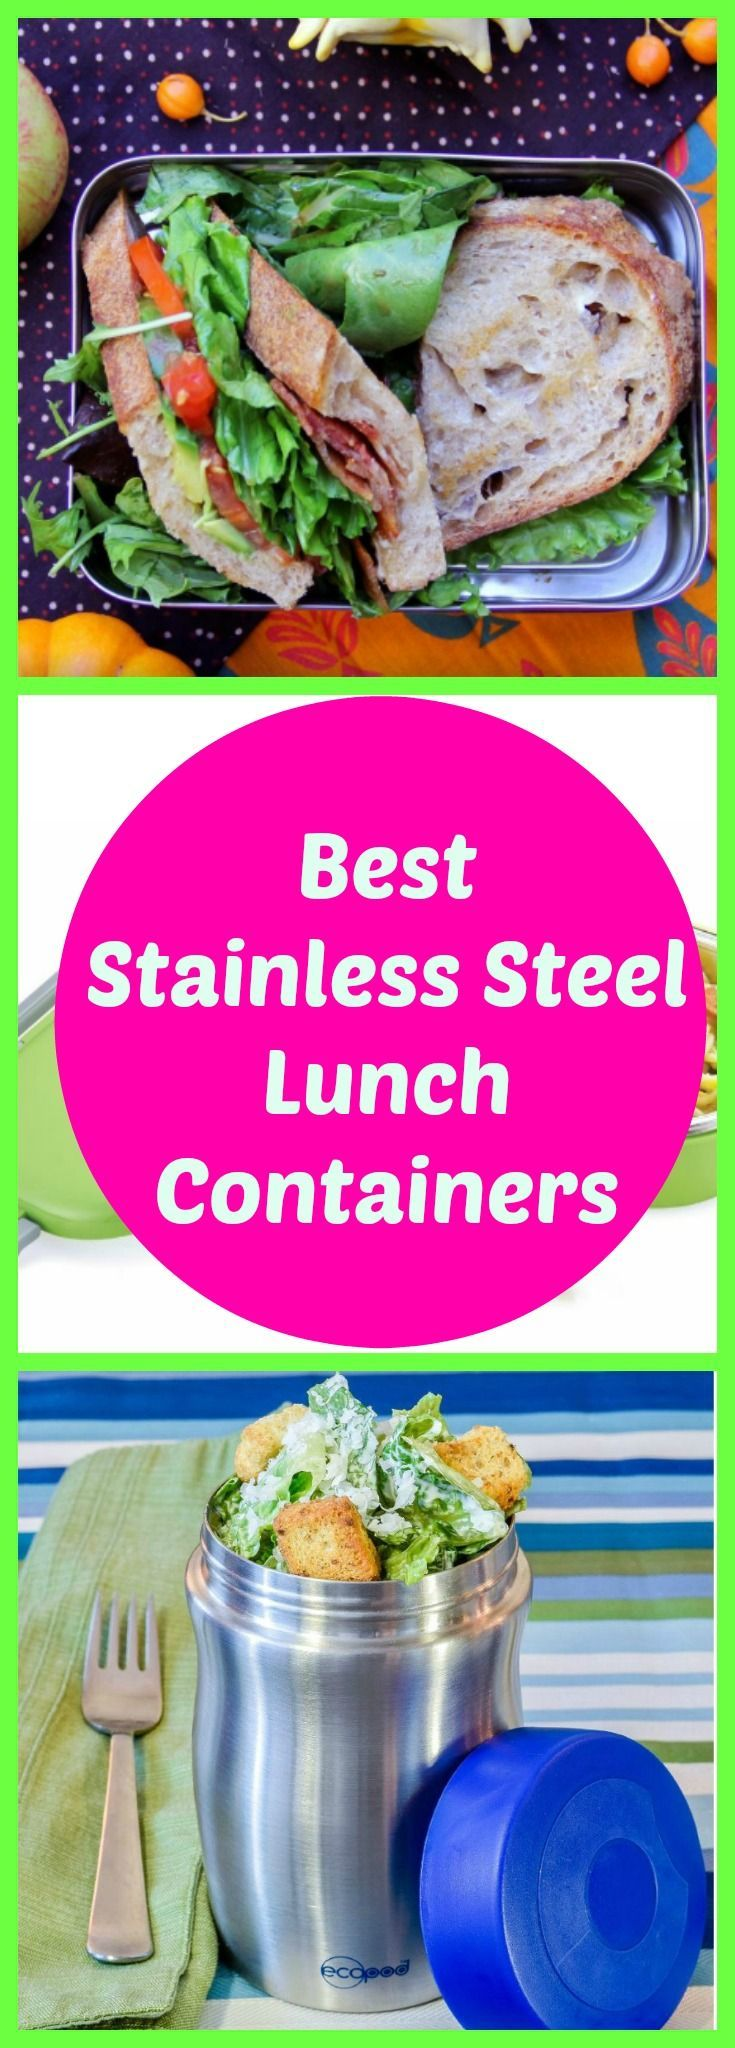 The best non-toxic stainless steel lunch containers. Perfect for kids and adults. Save money and time by reusing these quality containers perfect for your lunch box or lunch bag.